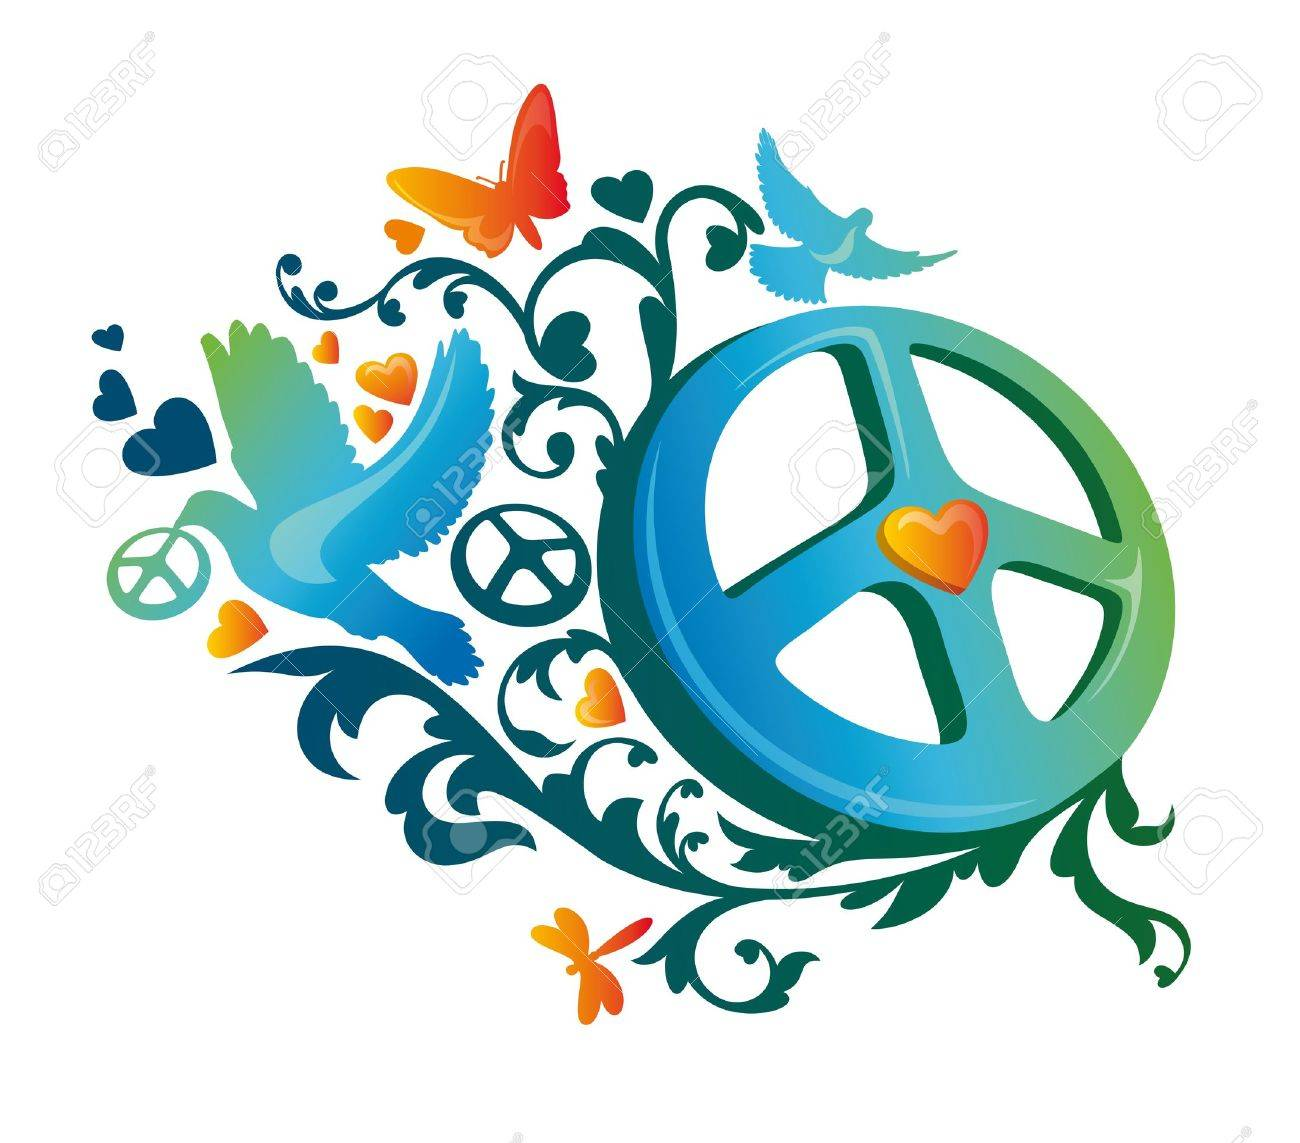 Peace sign images stock pictures royalty free peace sign photos abstract artistic hippie peace symbol illustration biocorpaavc